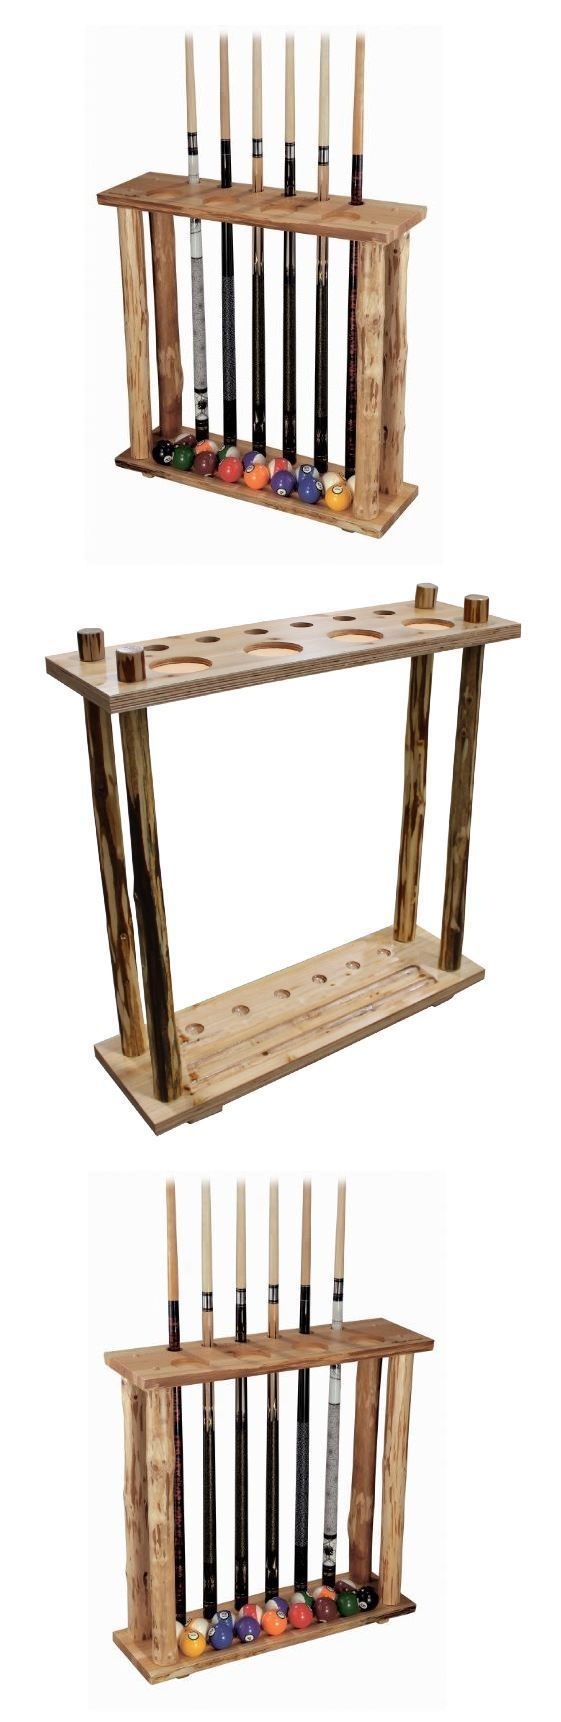 Ball and Cue Racks 75185: Pool Table Accessories Billiards Cue Rack Ball Stand Game Room Storage Wood Fun -> BUY IT NOW ONLY: $86.97 on eBay!